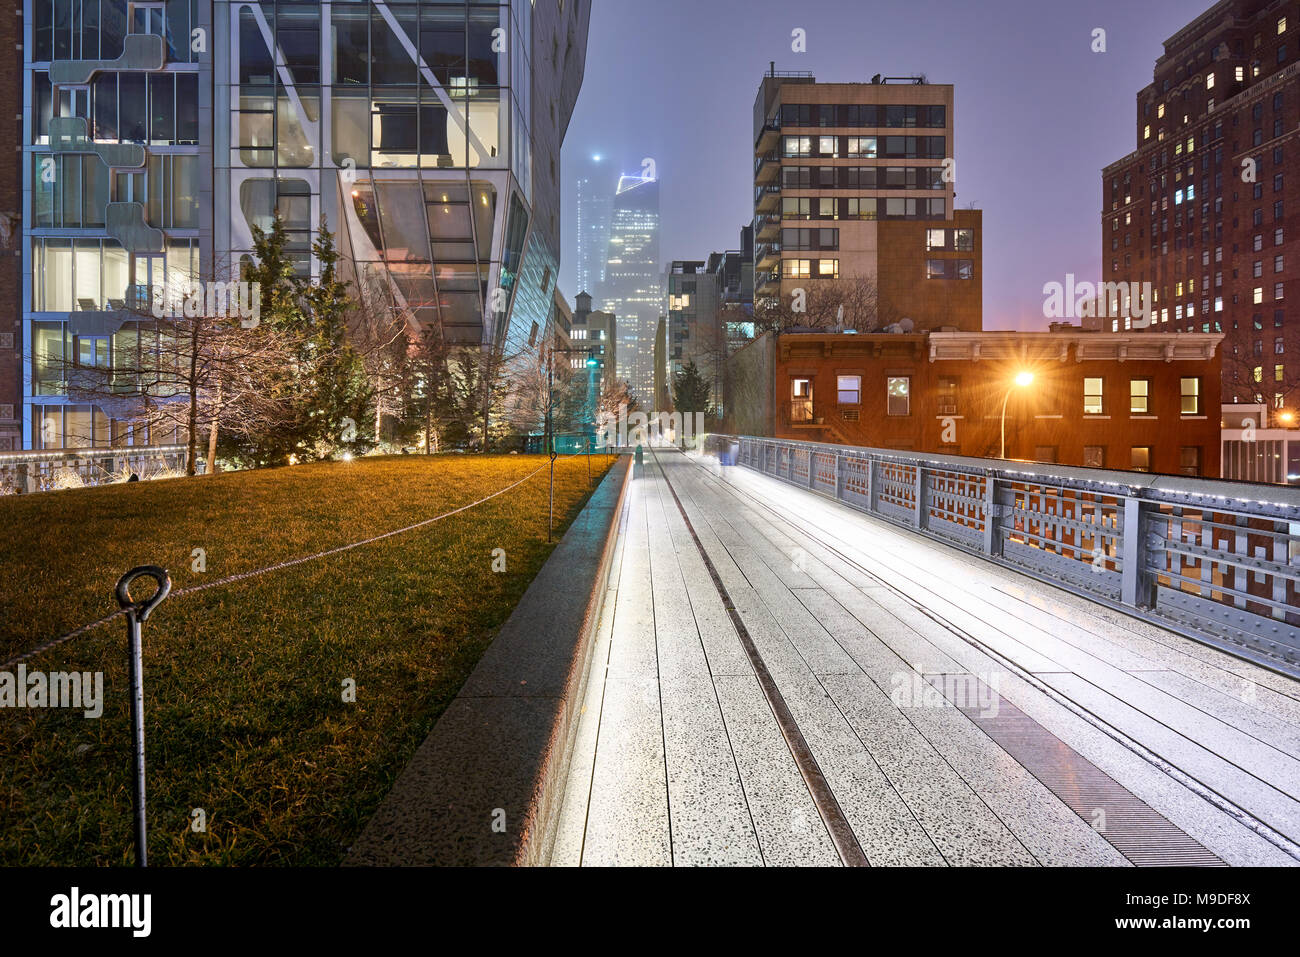 La Highline à Chelsea de nuit un jour de pluie en hiver. Manhattan, New York City Photo Stock